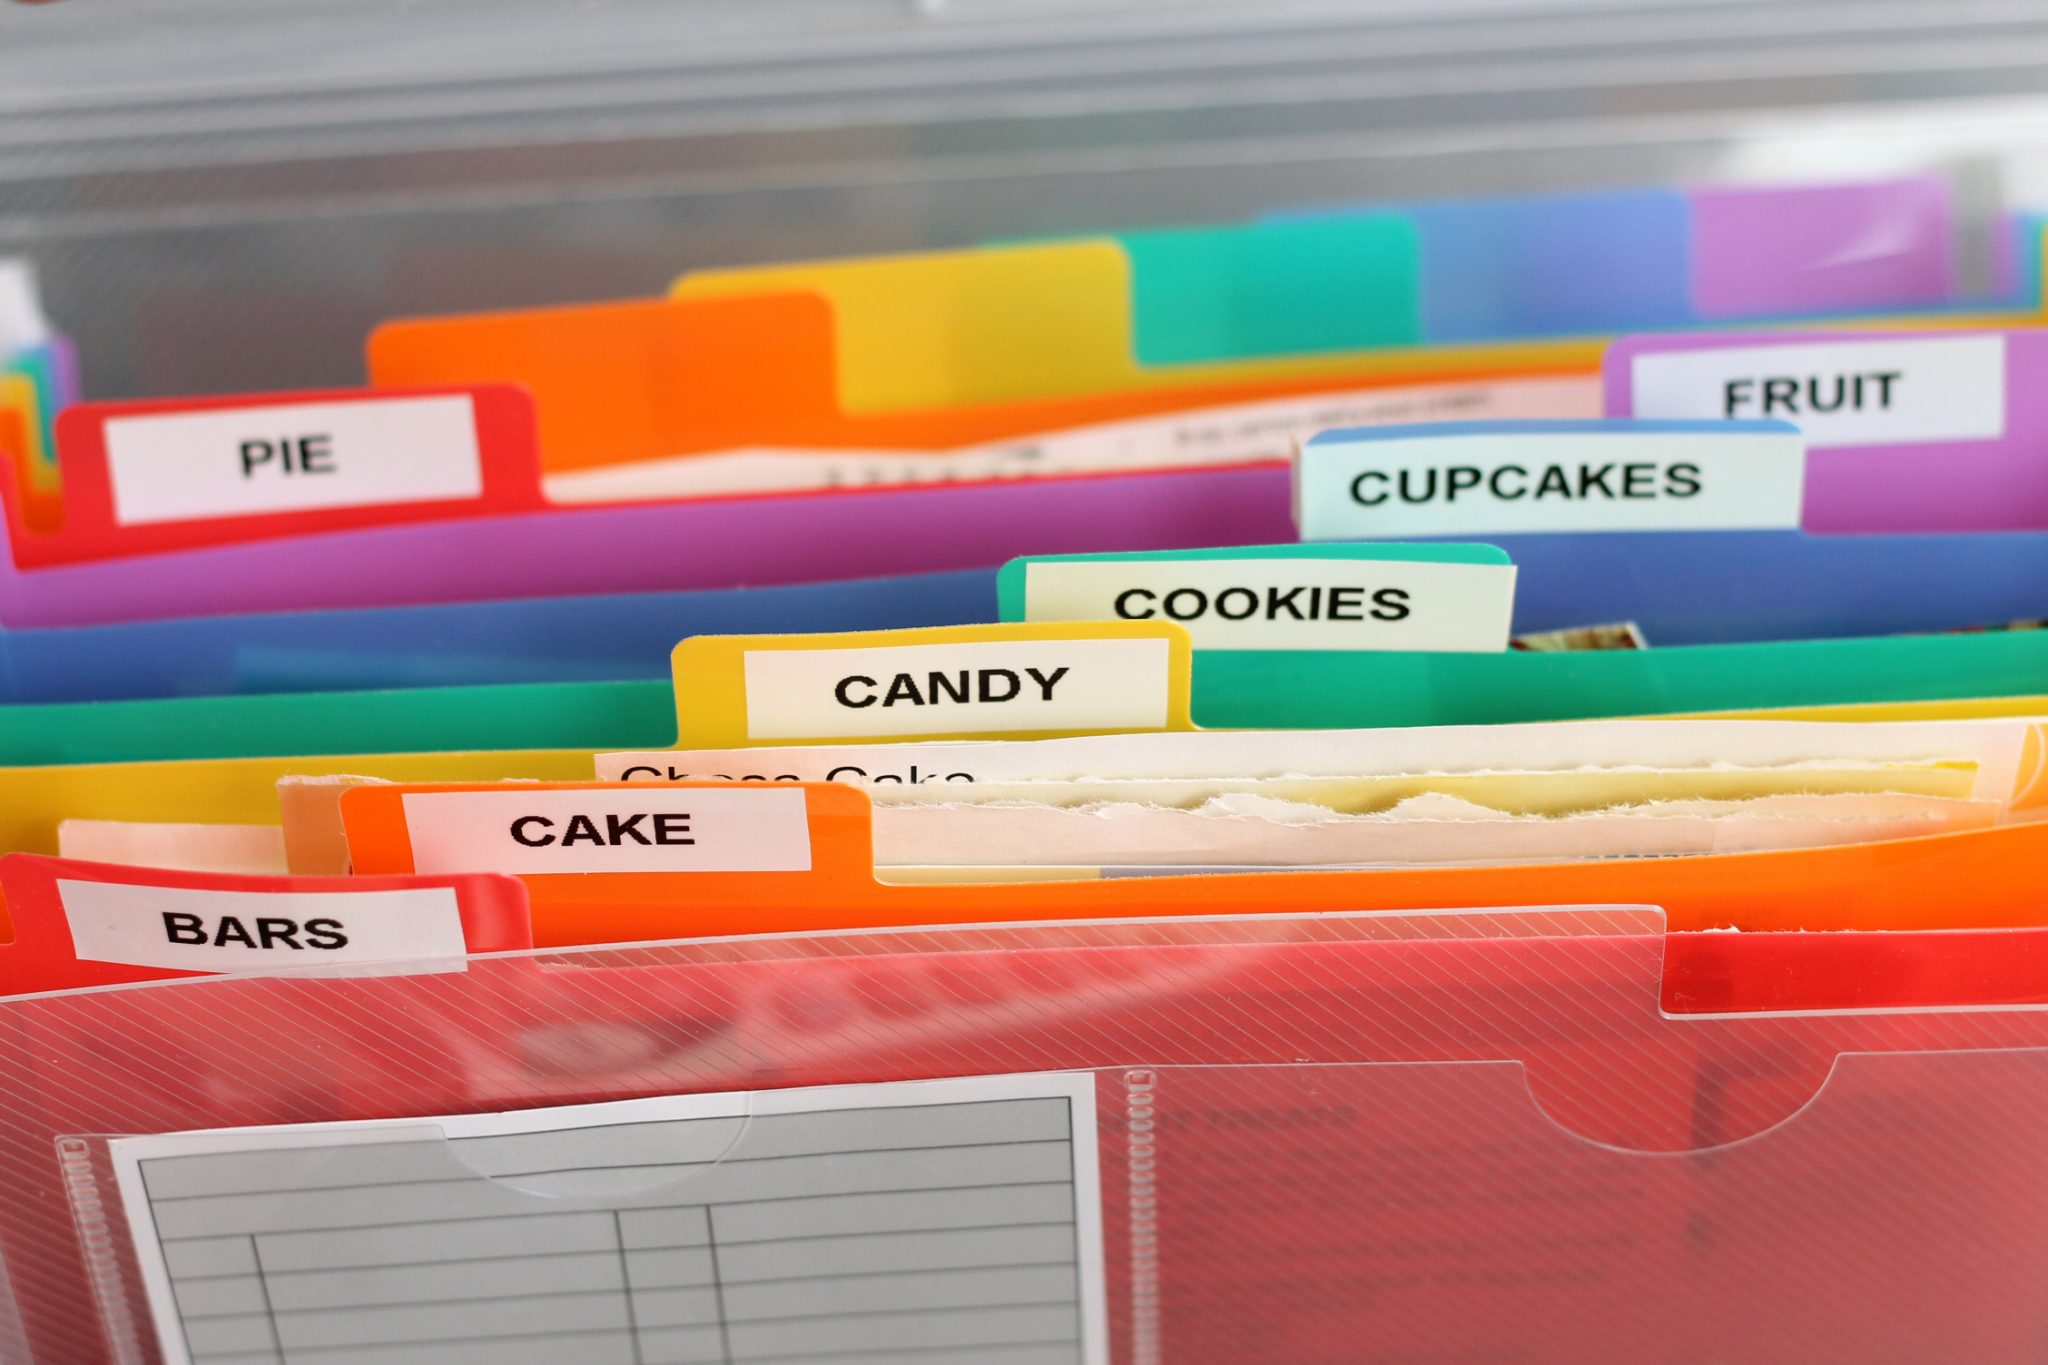 Recipe organizer - how to cut the clutter and organize your recipes!